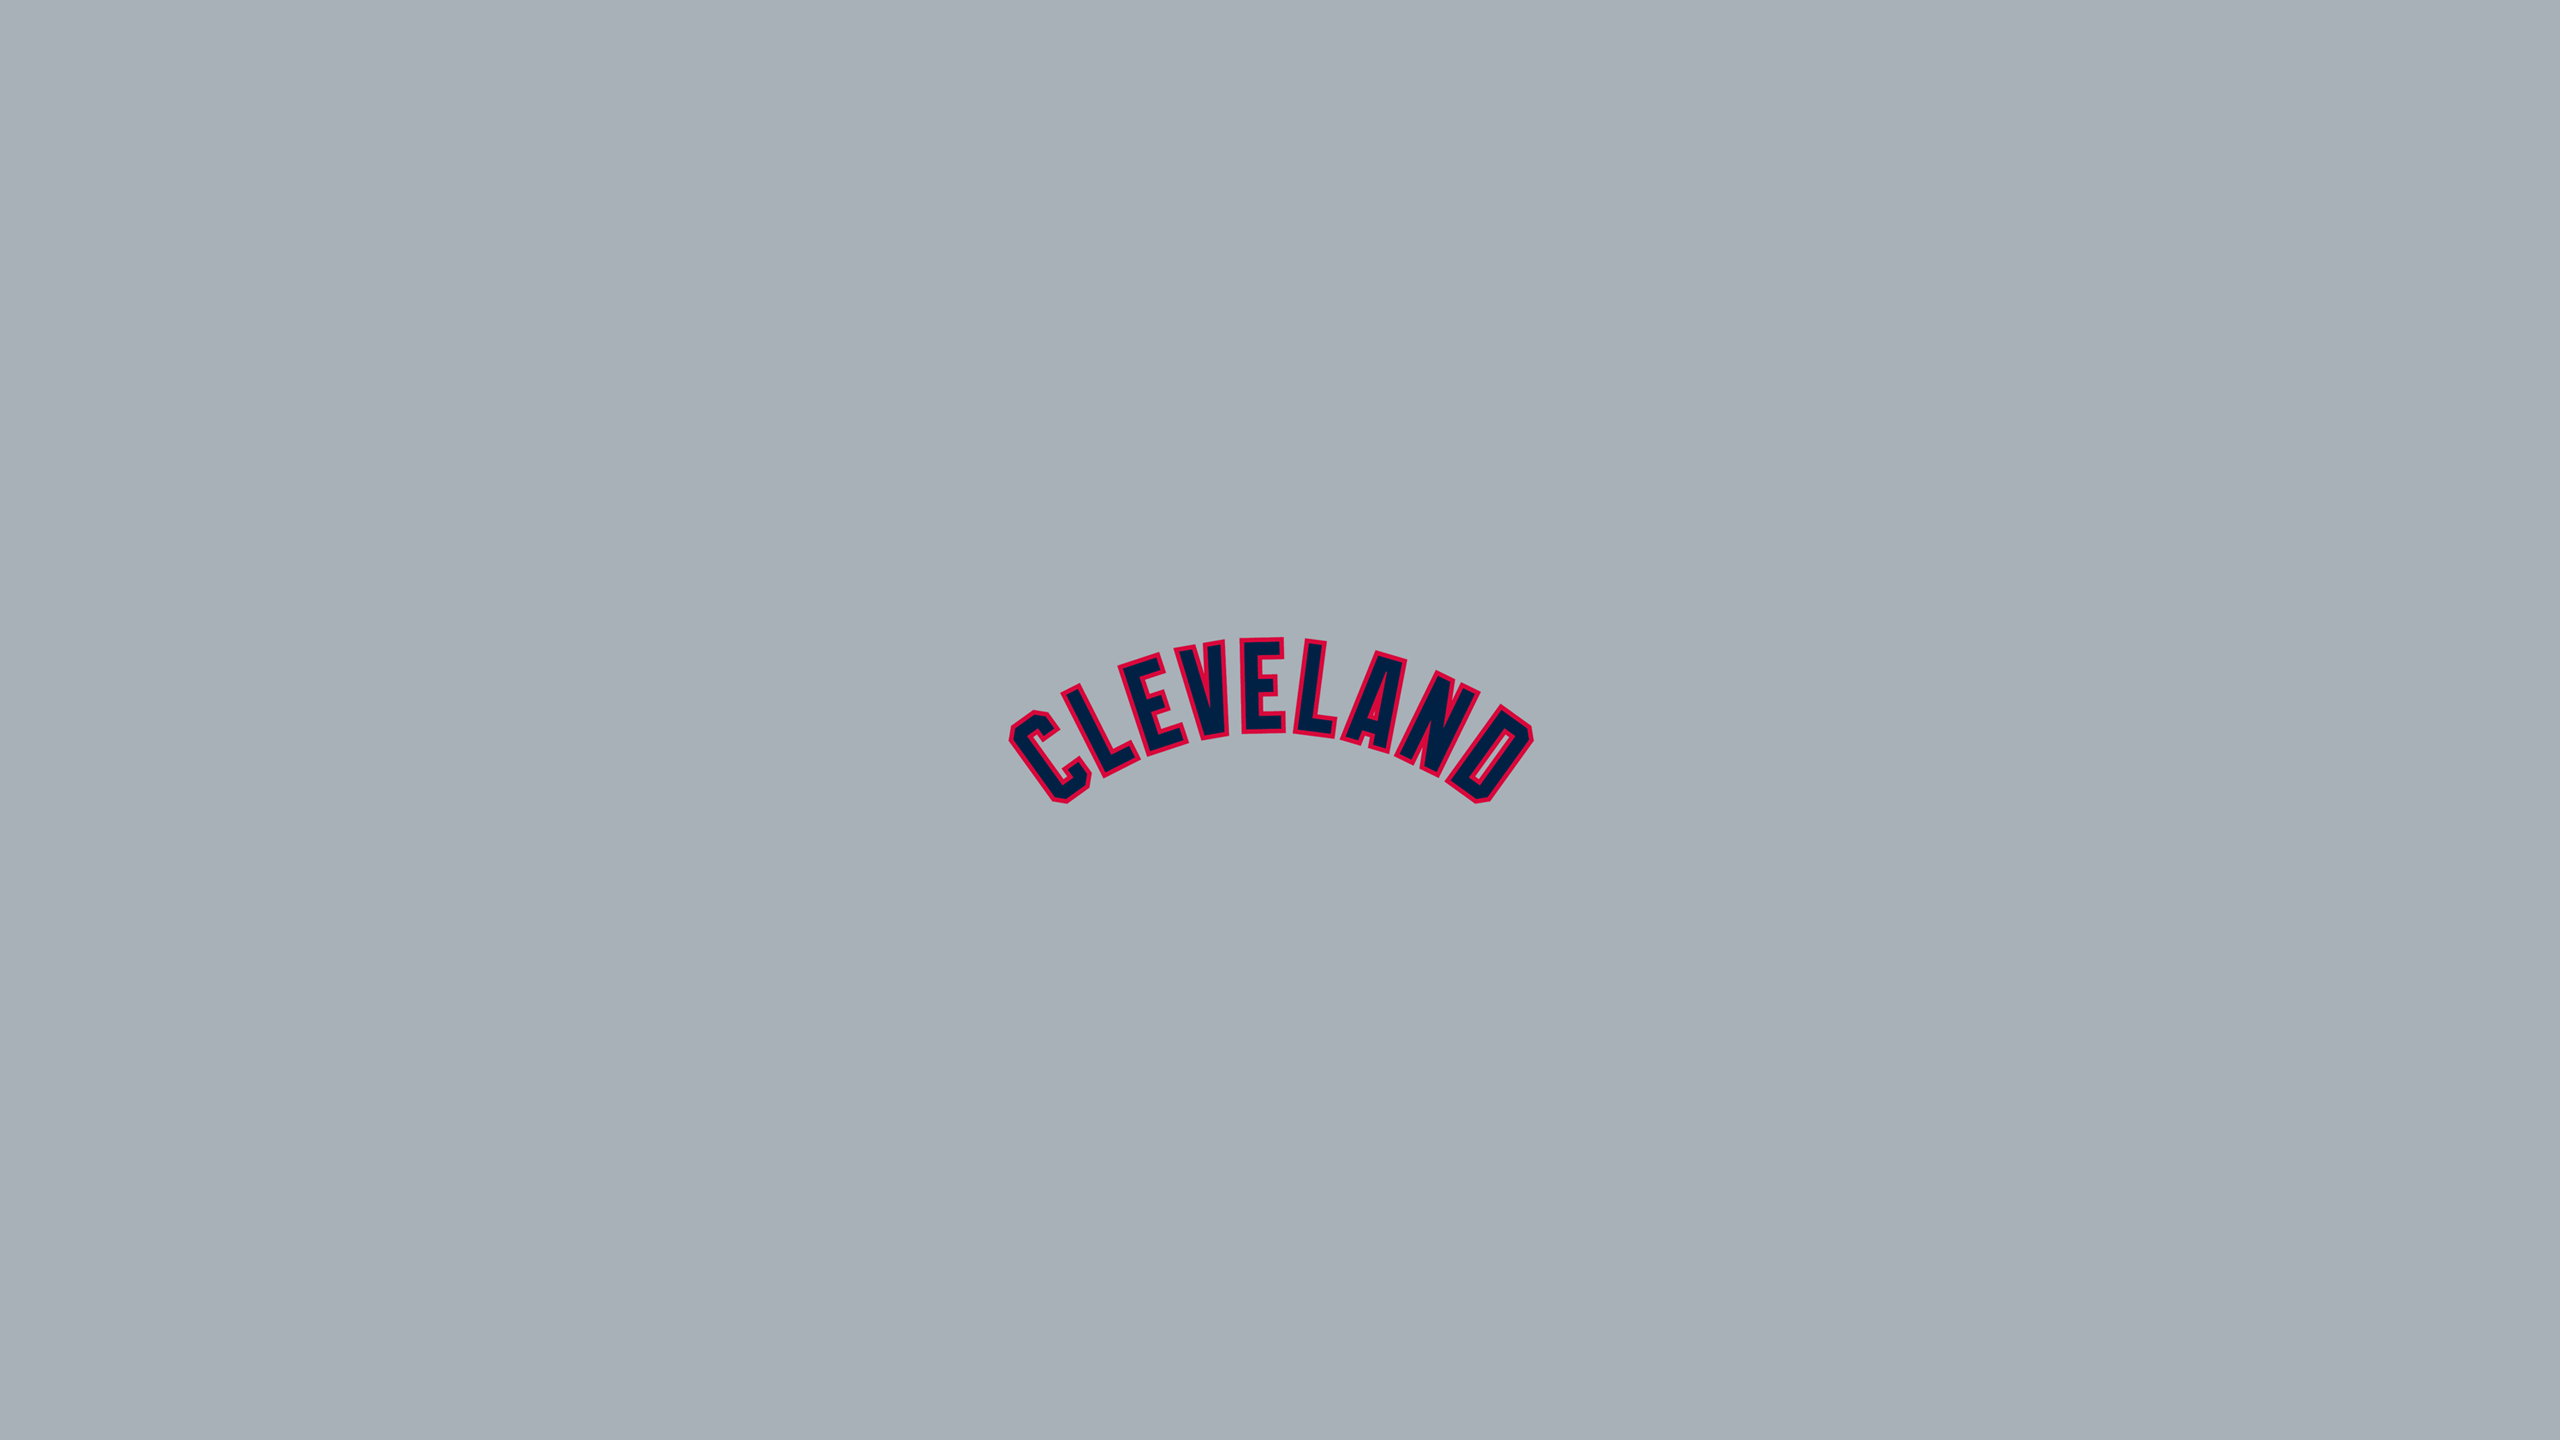 Cleveland Baseball Team (Away)